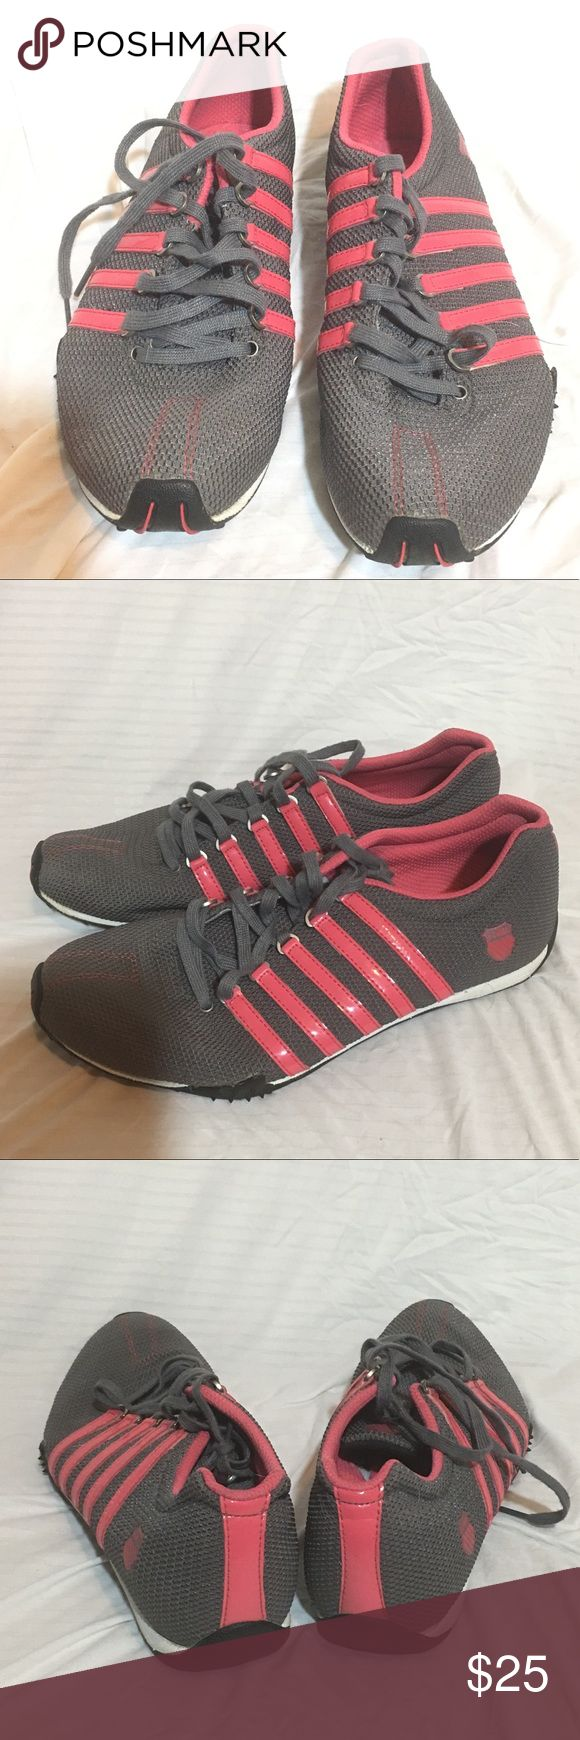 K Swiss gray and coral tennis shoes K Swiss gray and coral/pink tennis shoes in size 8.5. Good used condition. K Swiss Shoes Sneakers